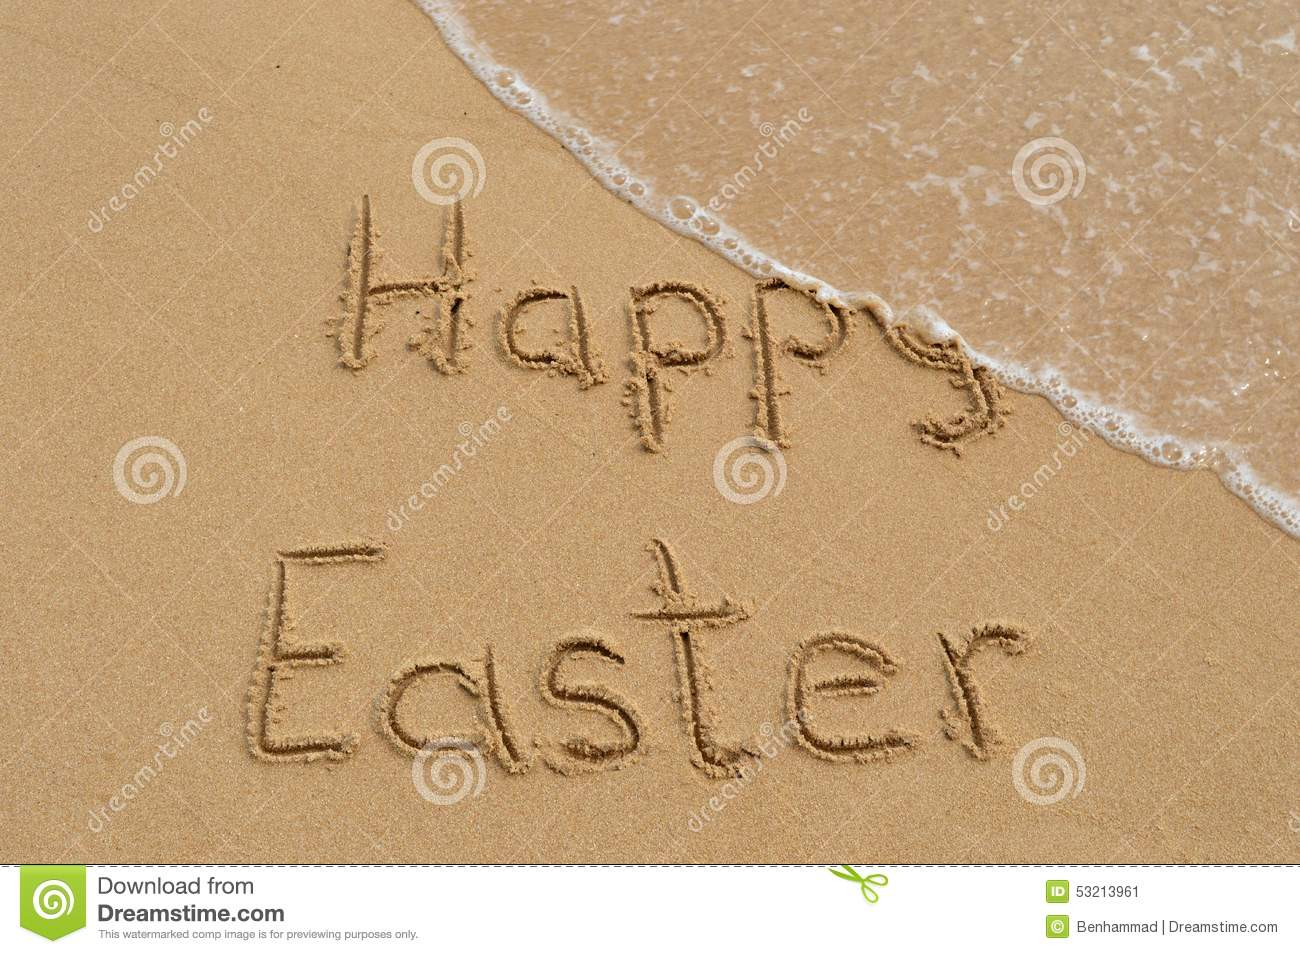 Happy easter greetings stock image image of beach greetings 53213961 happy easter greetings kristyandbryce Images